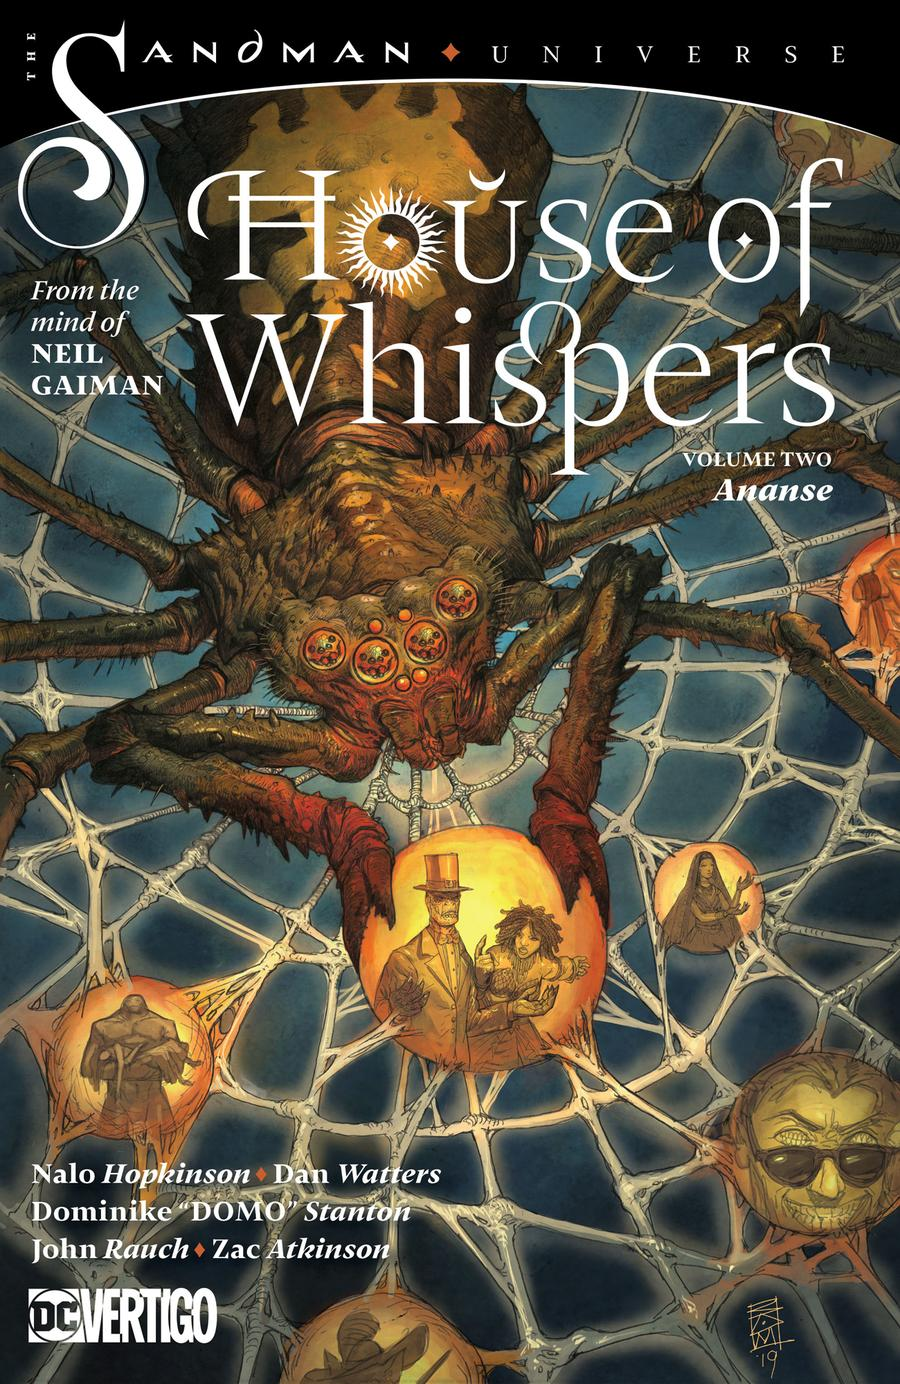 House Of Whispers Vol 2 Ananse TP